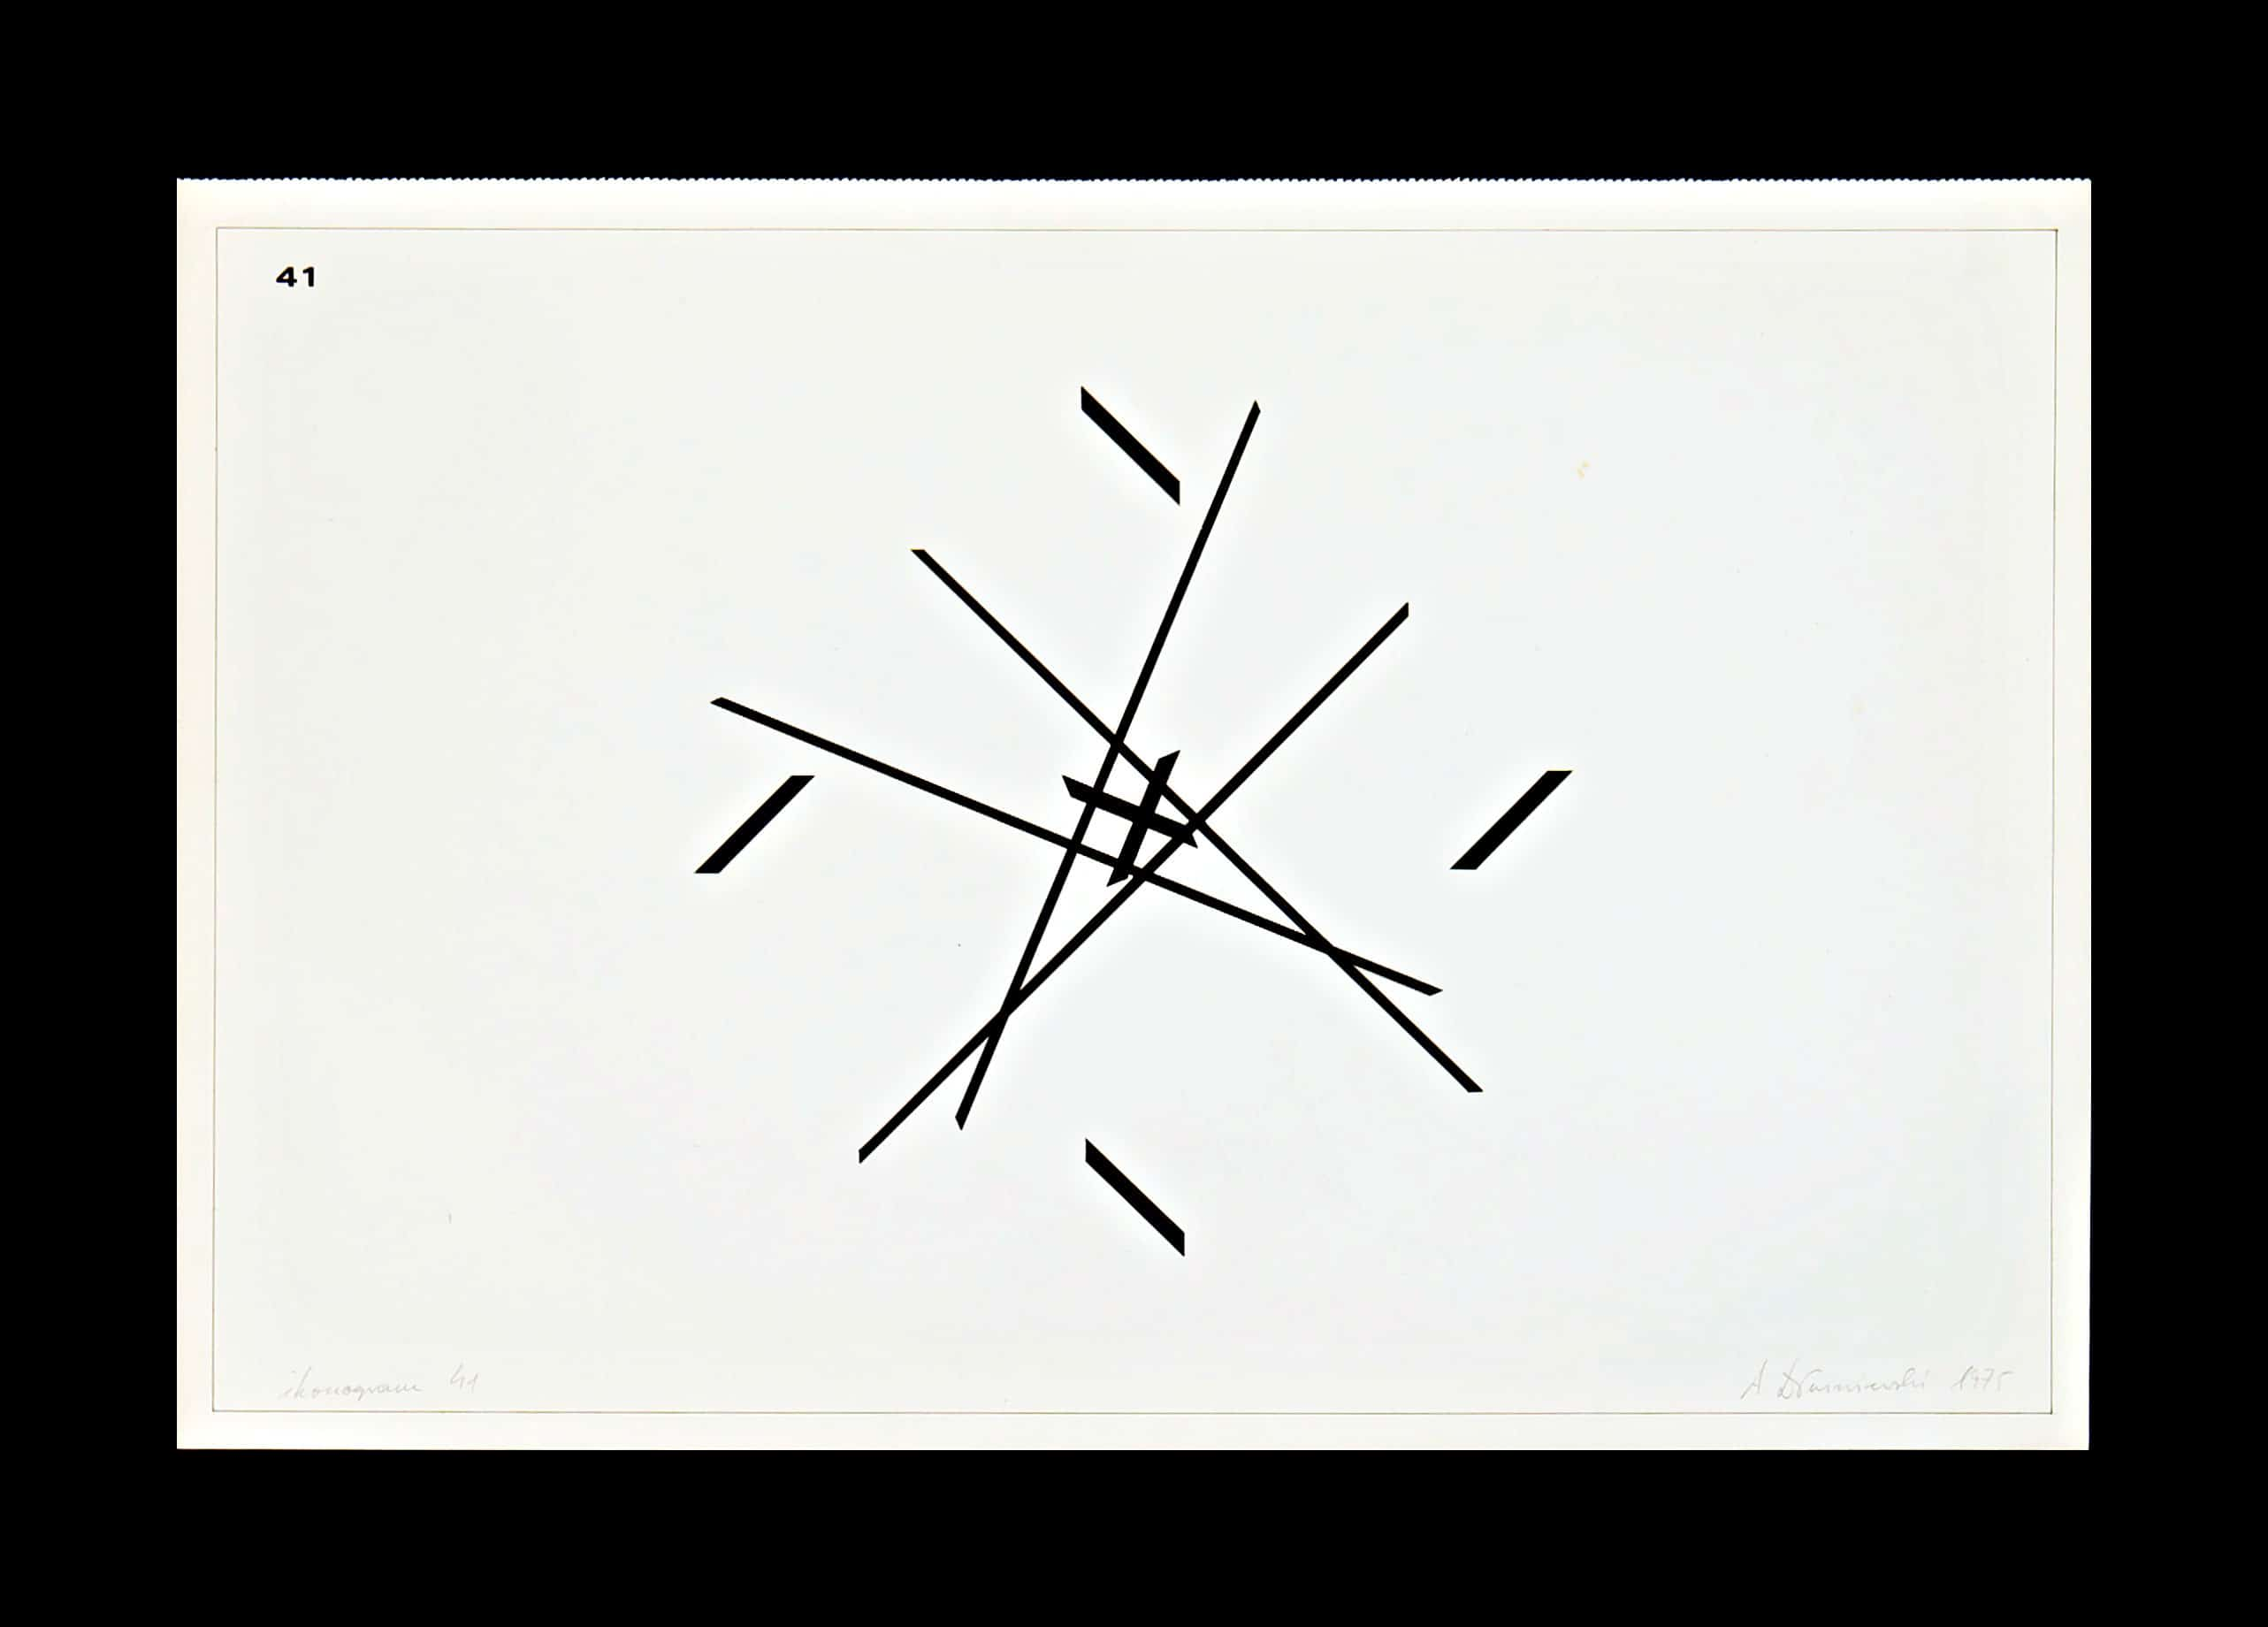 Work from series of drawing Ikonogramy, 1973-194, ink on paper, 30 x 40 cm